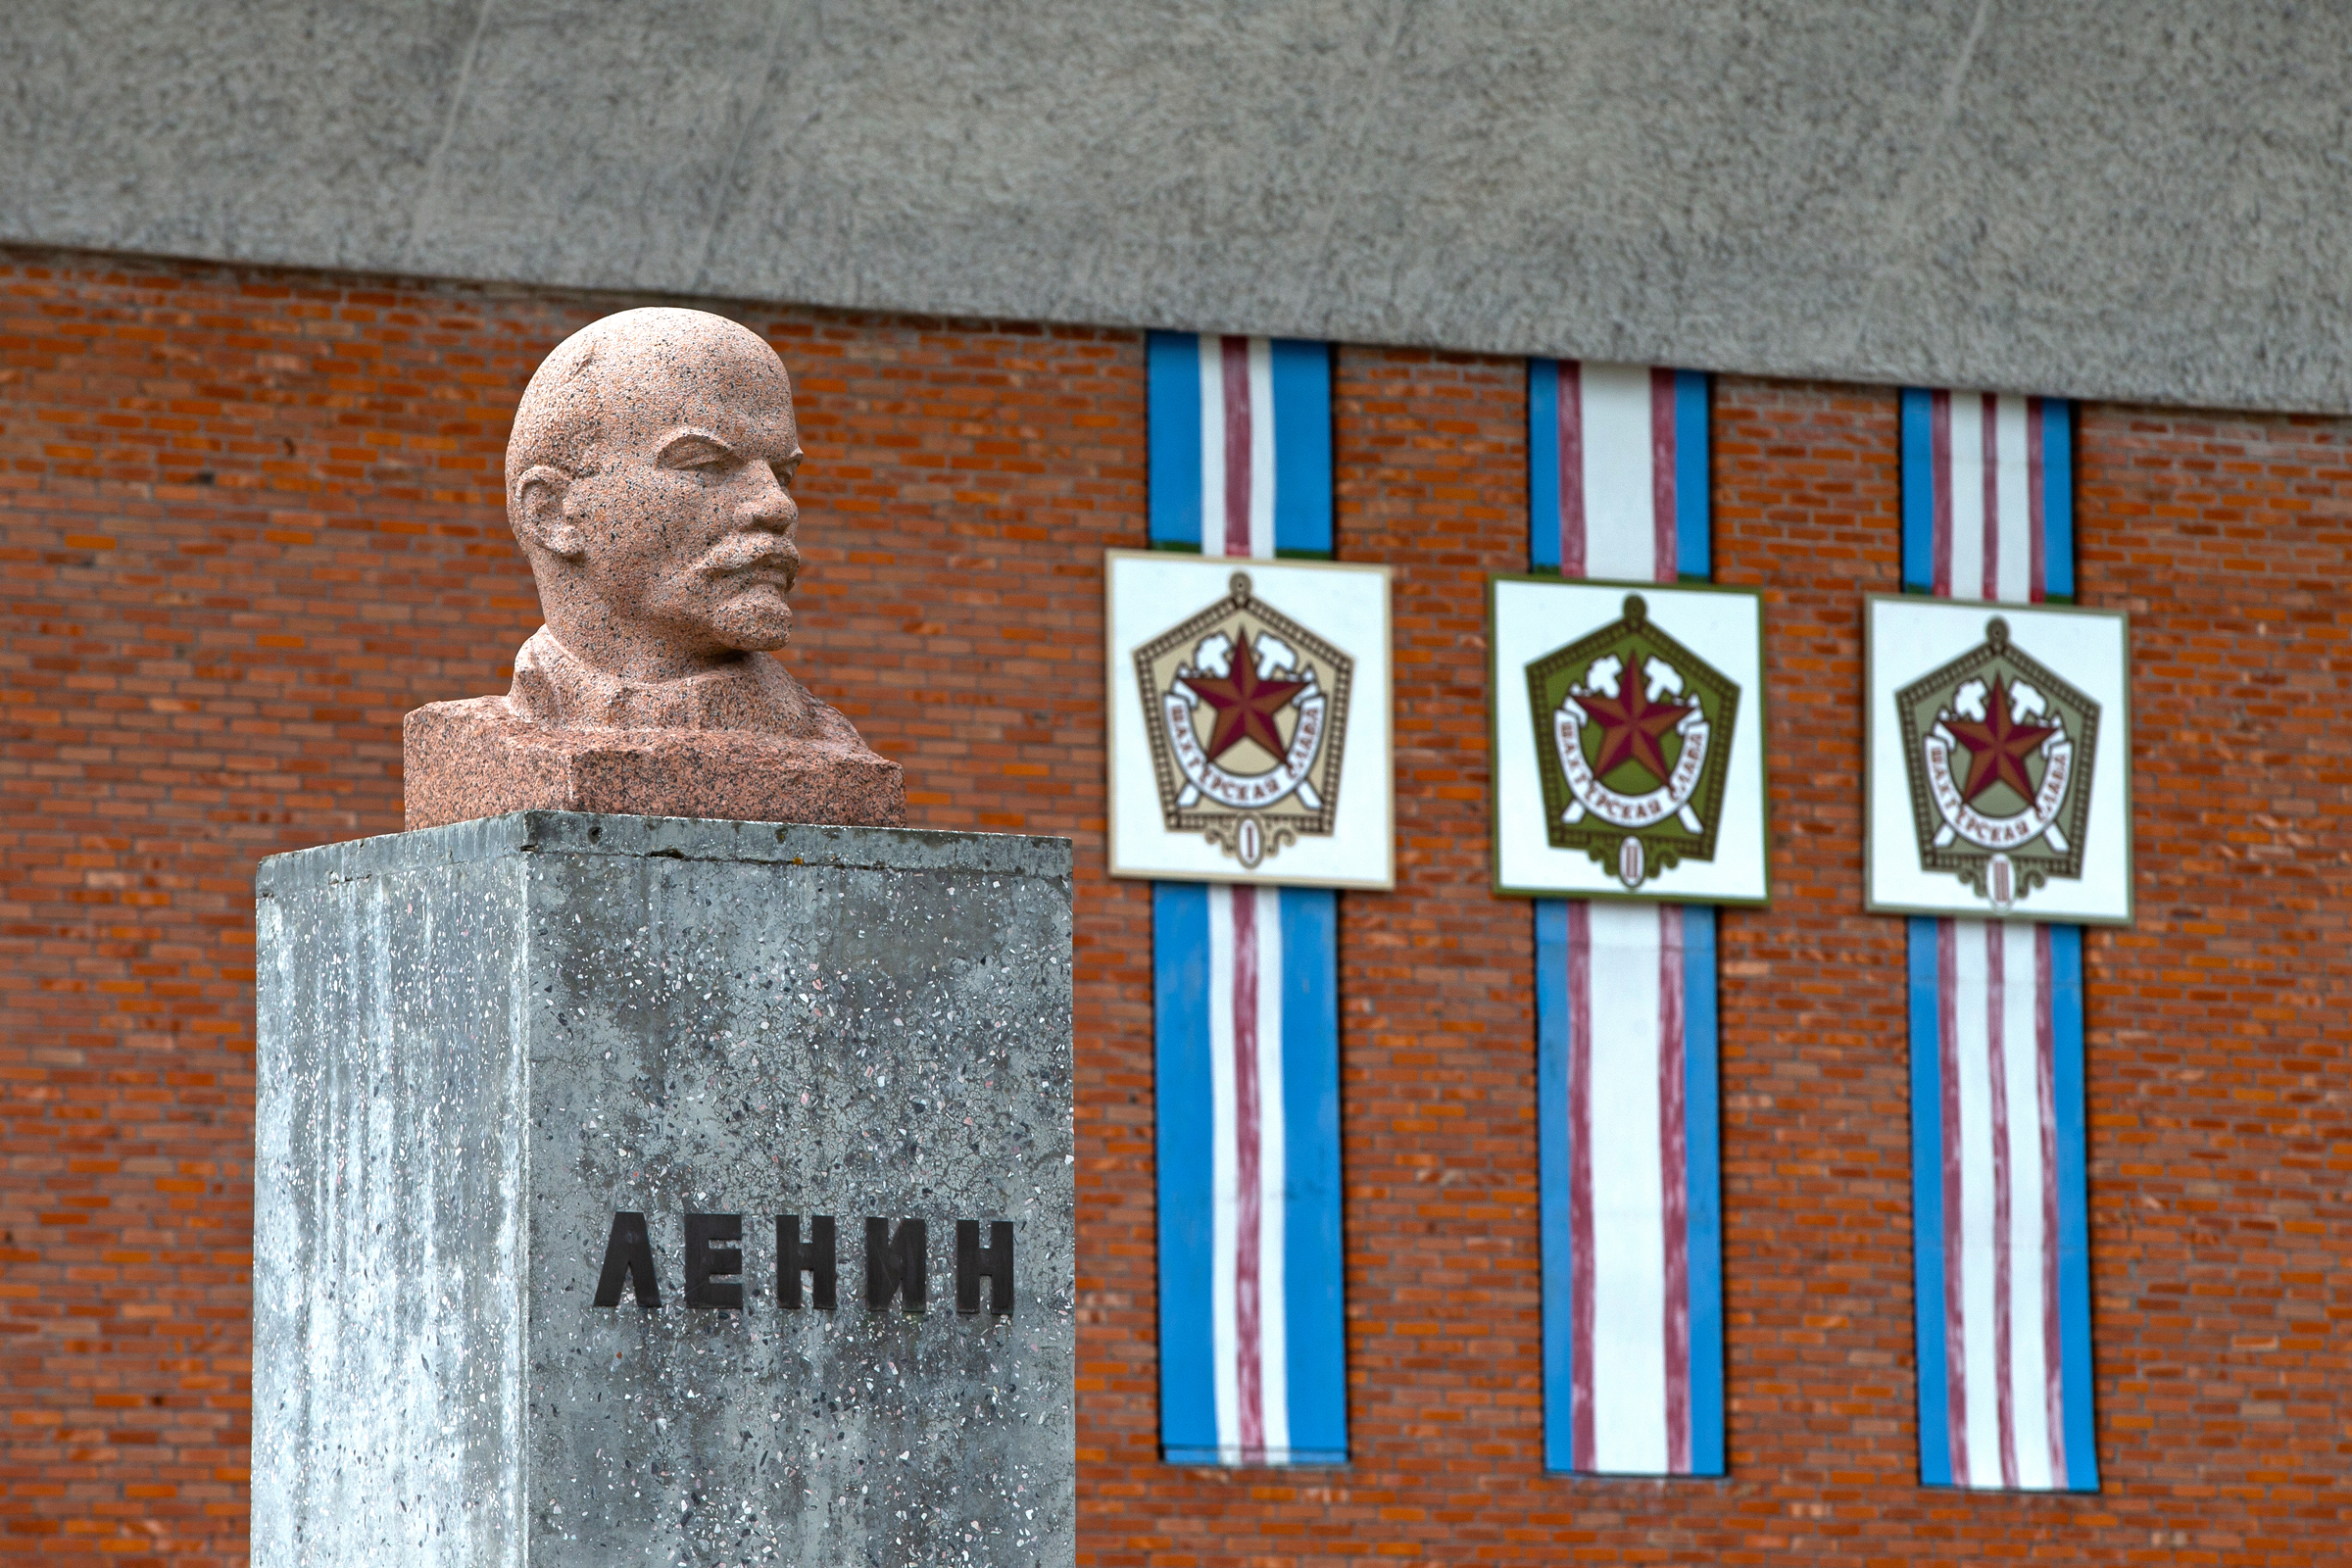 Lenin outside the Yuri Gagarin Sports Centre (Mike Watson).